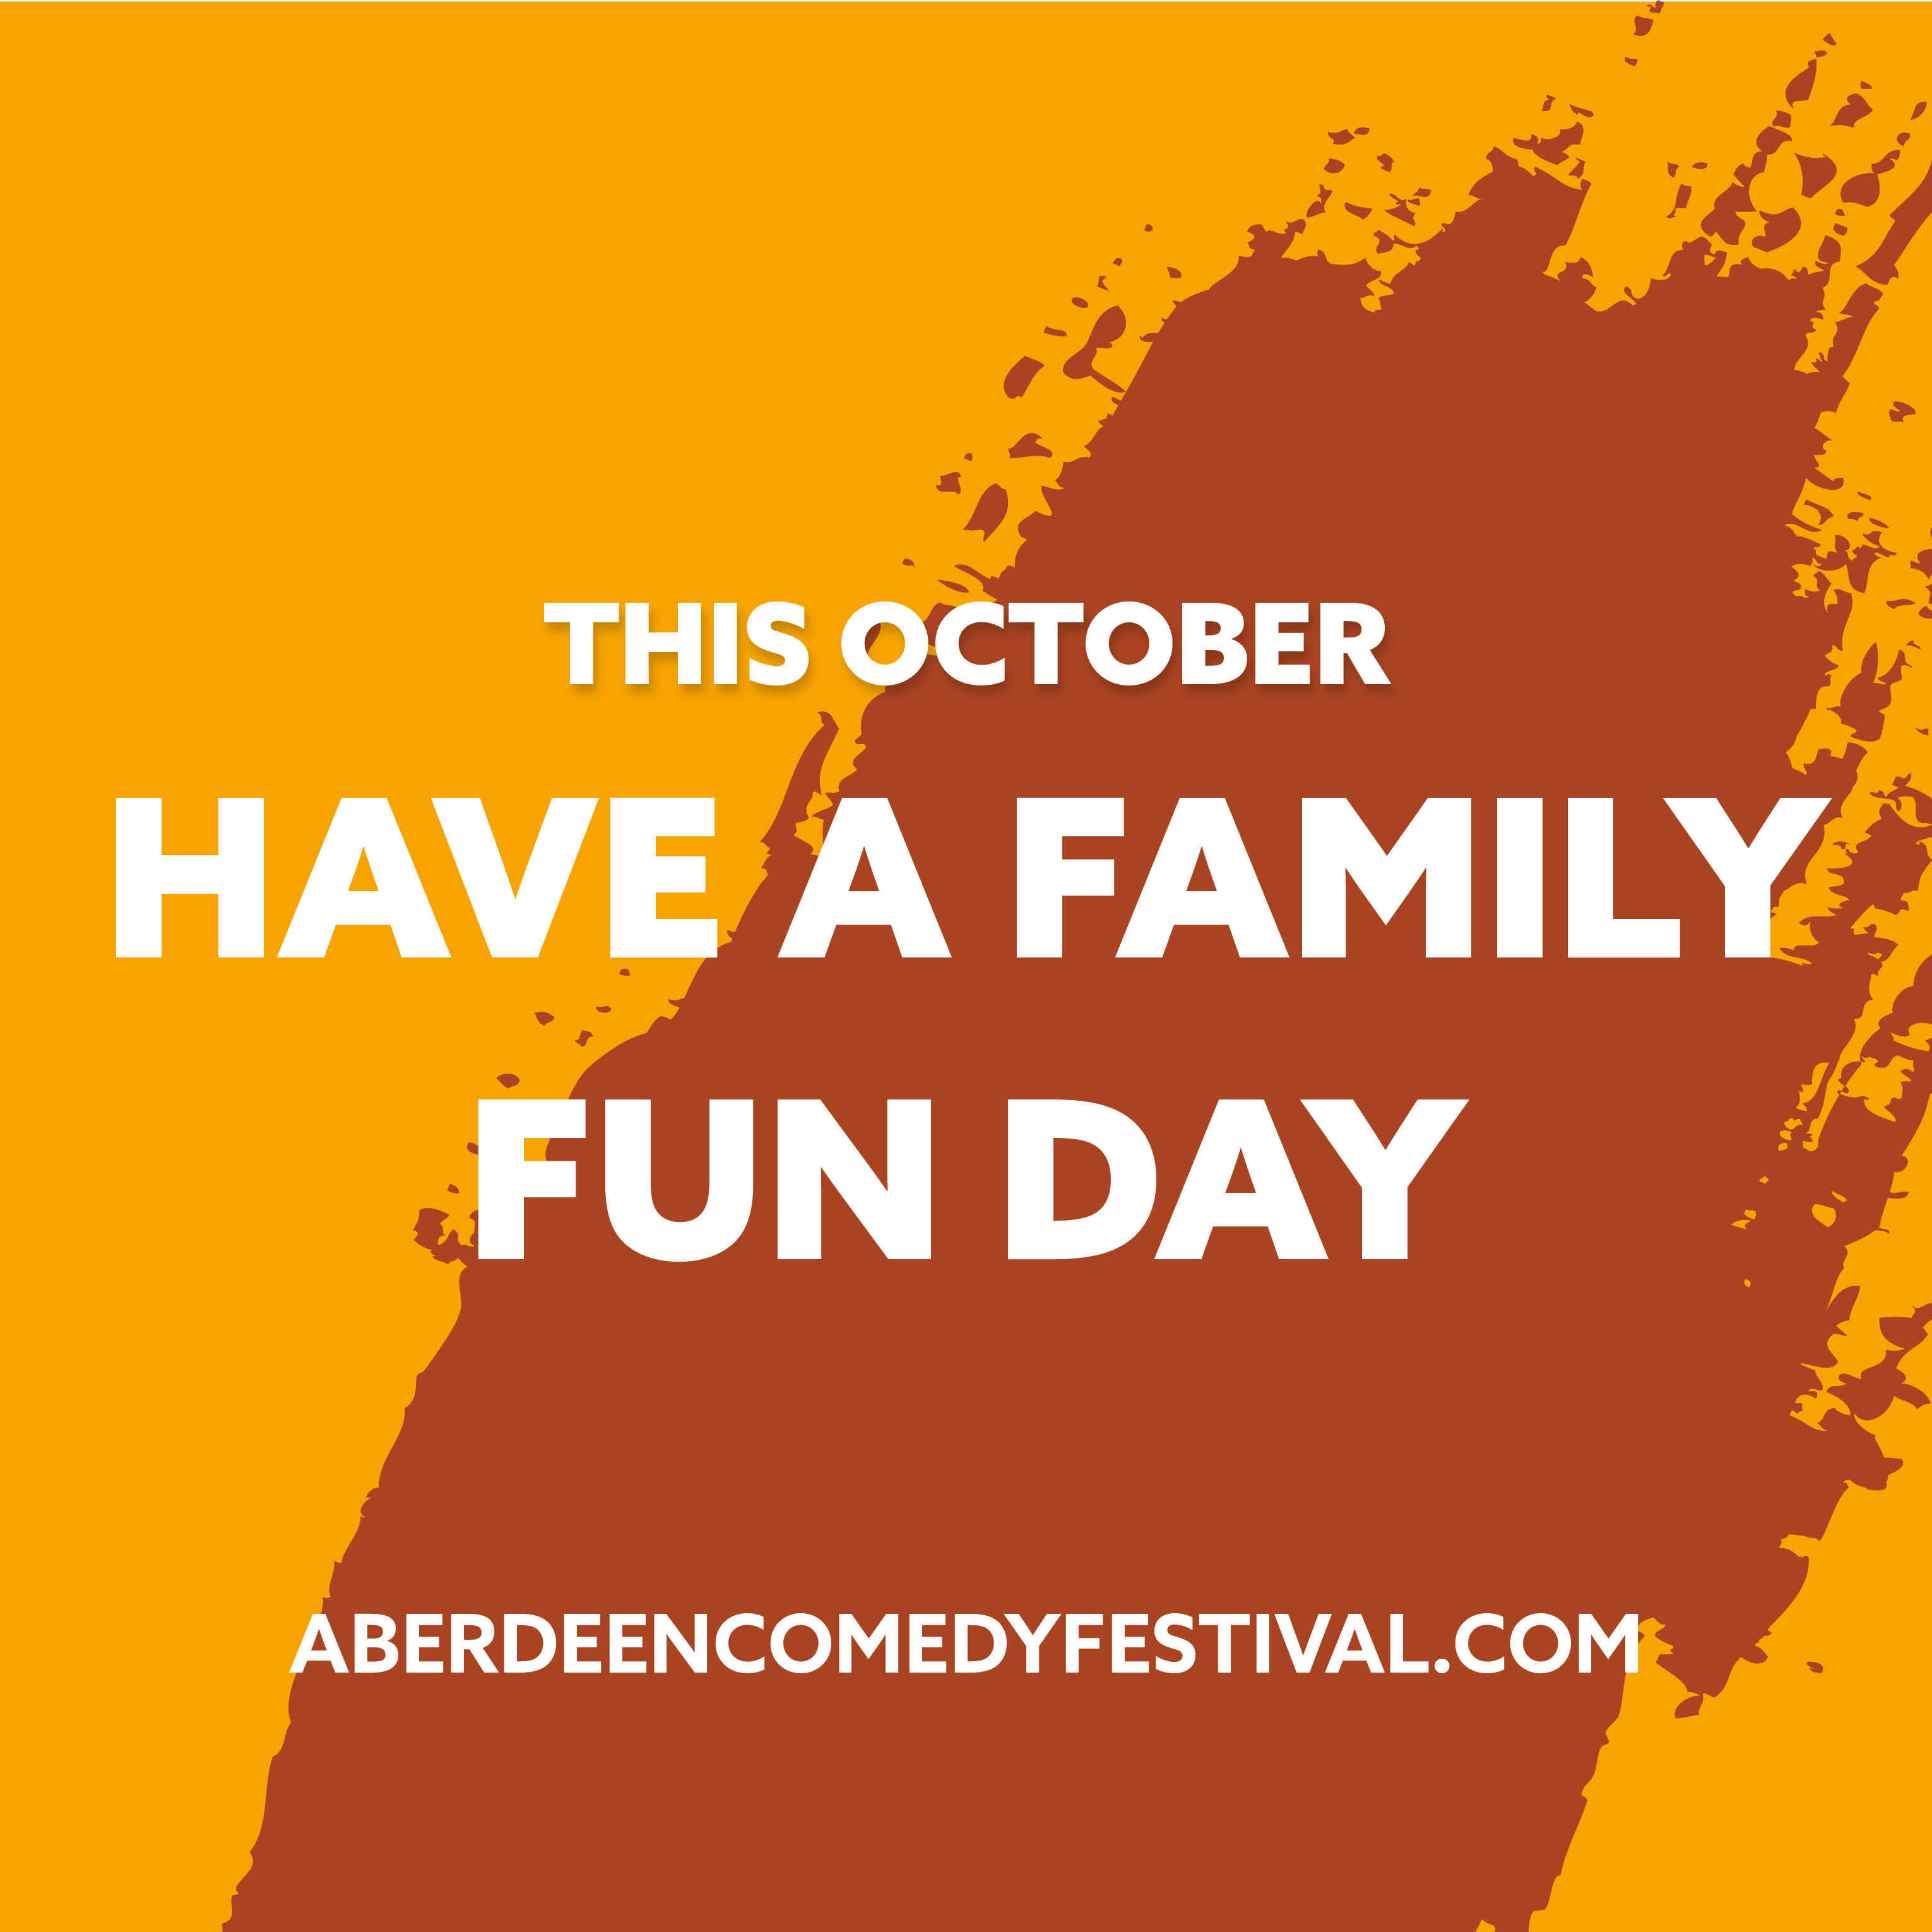 Find your funny with the whole family this October!